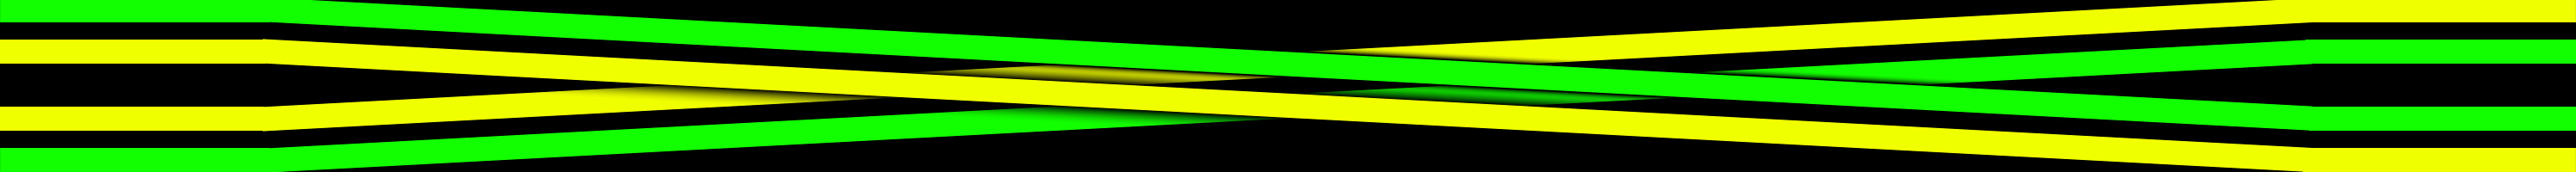 swapDoubleD greenYellow 3Dcross